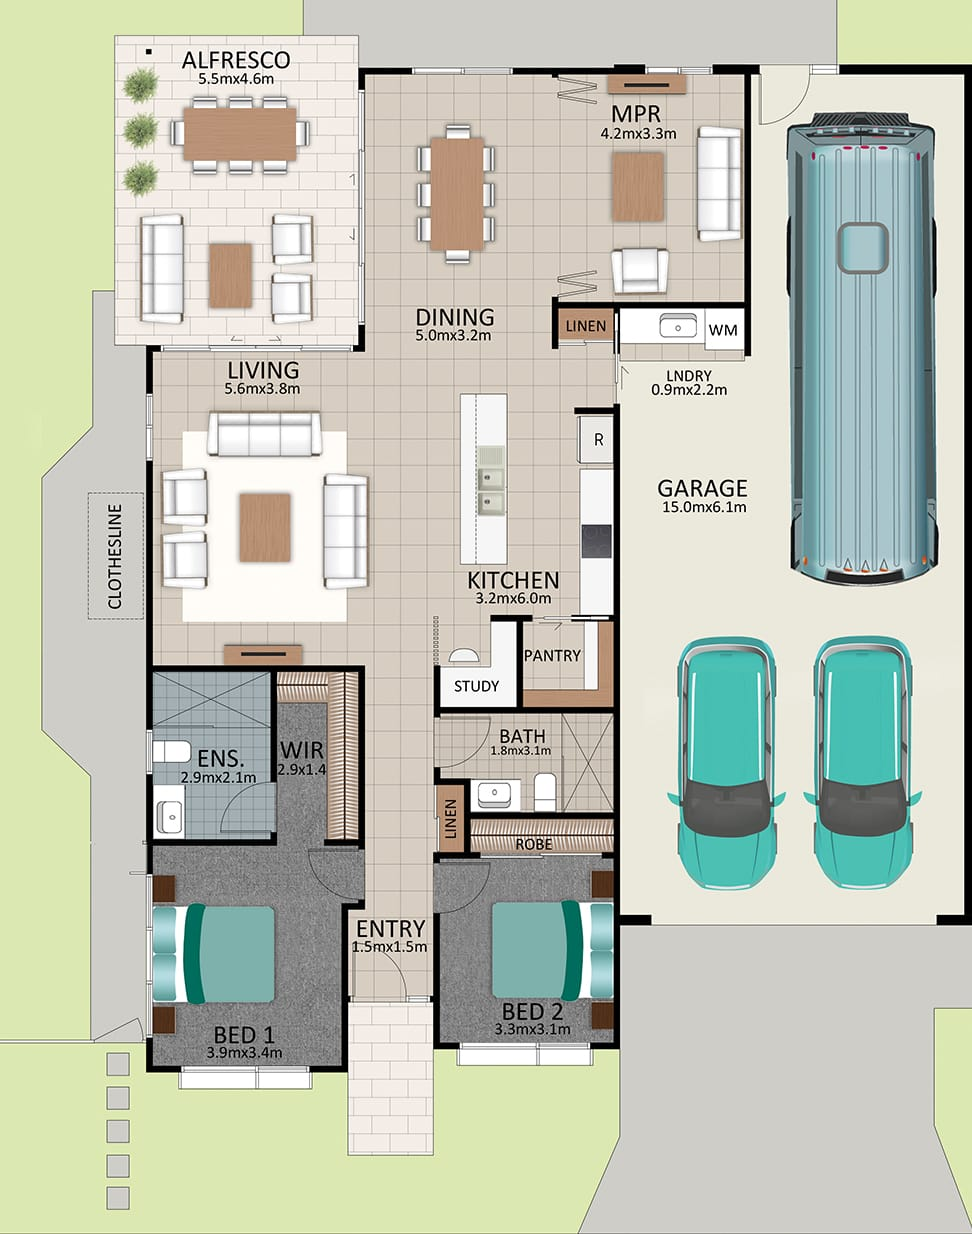 LR WEB LAT25 Floorplan LOT 183 Pepper NOV19 V1 - Lot 183